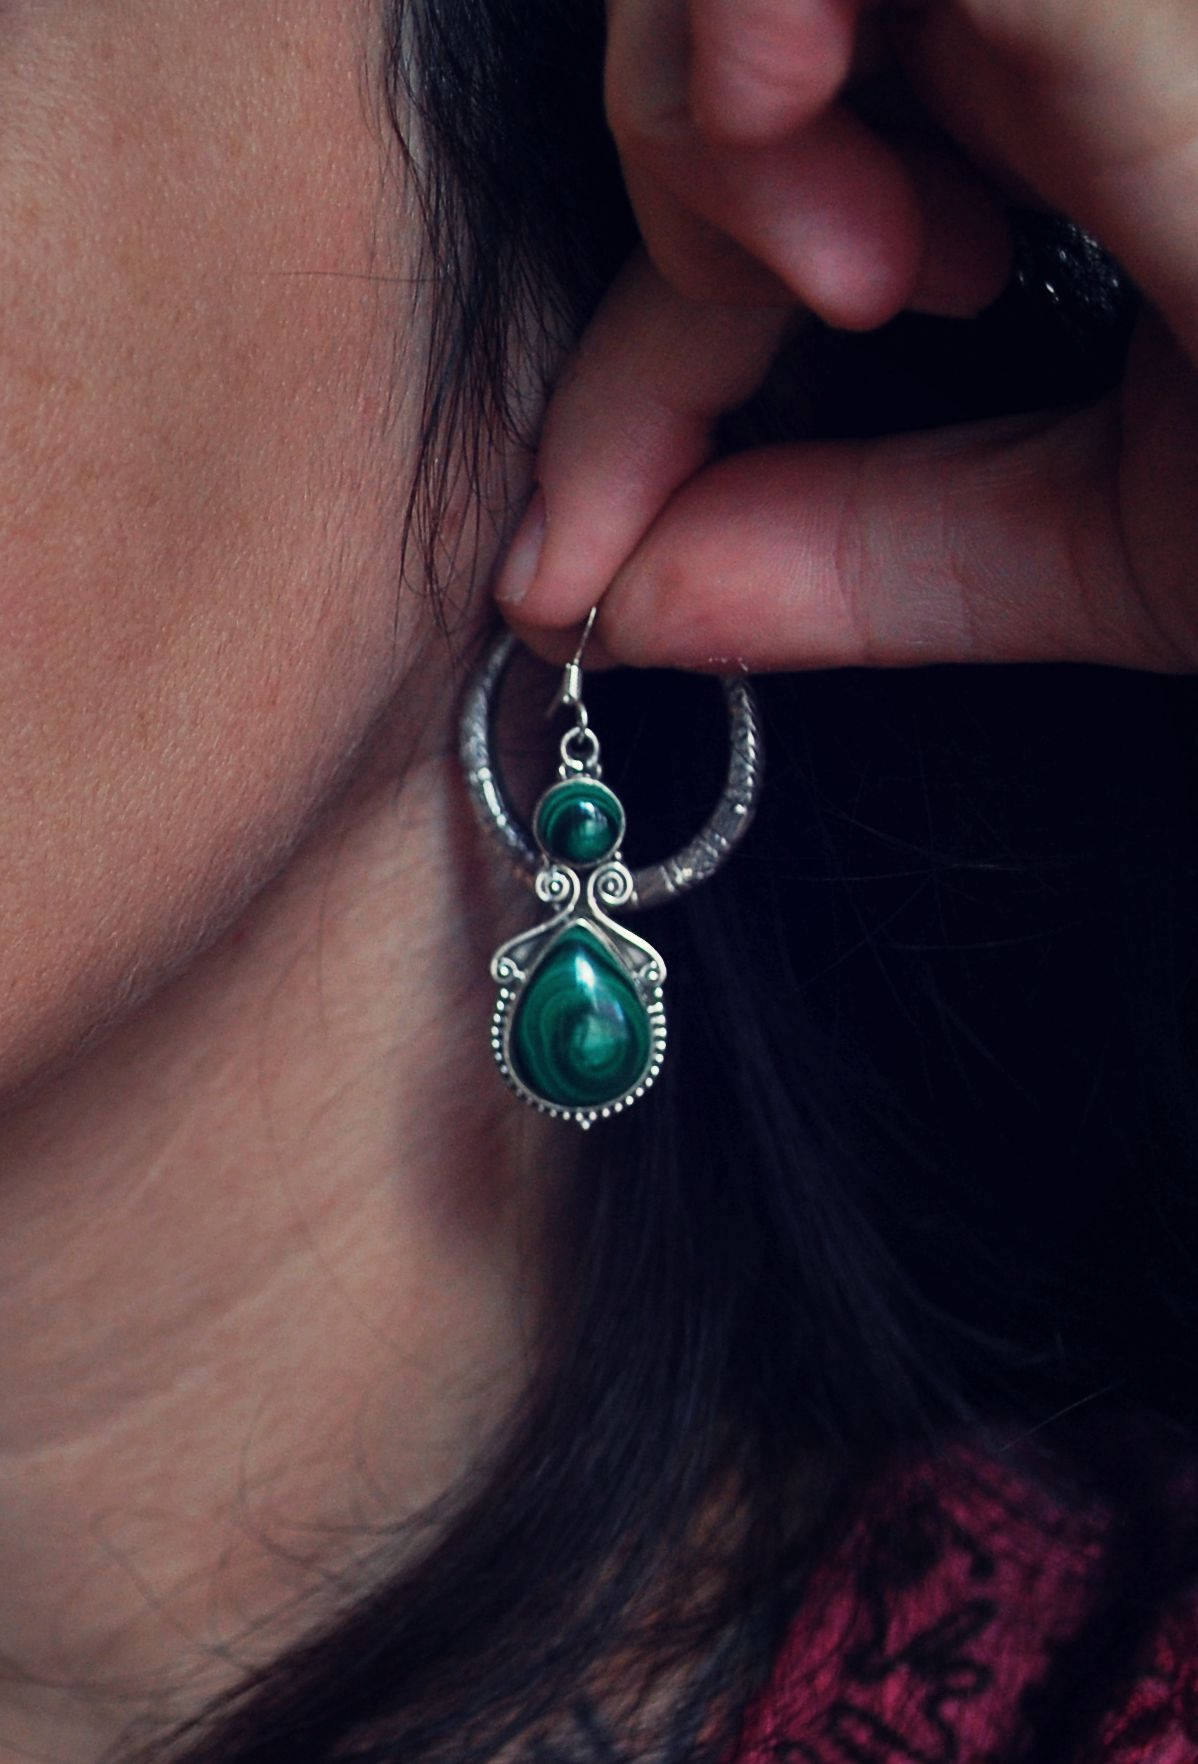 Gypsy Indian Malachite Earrings - Ethnic Malachite Earrings - Indian Earrings